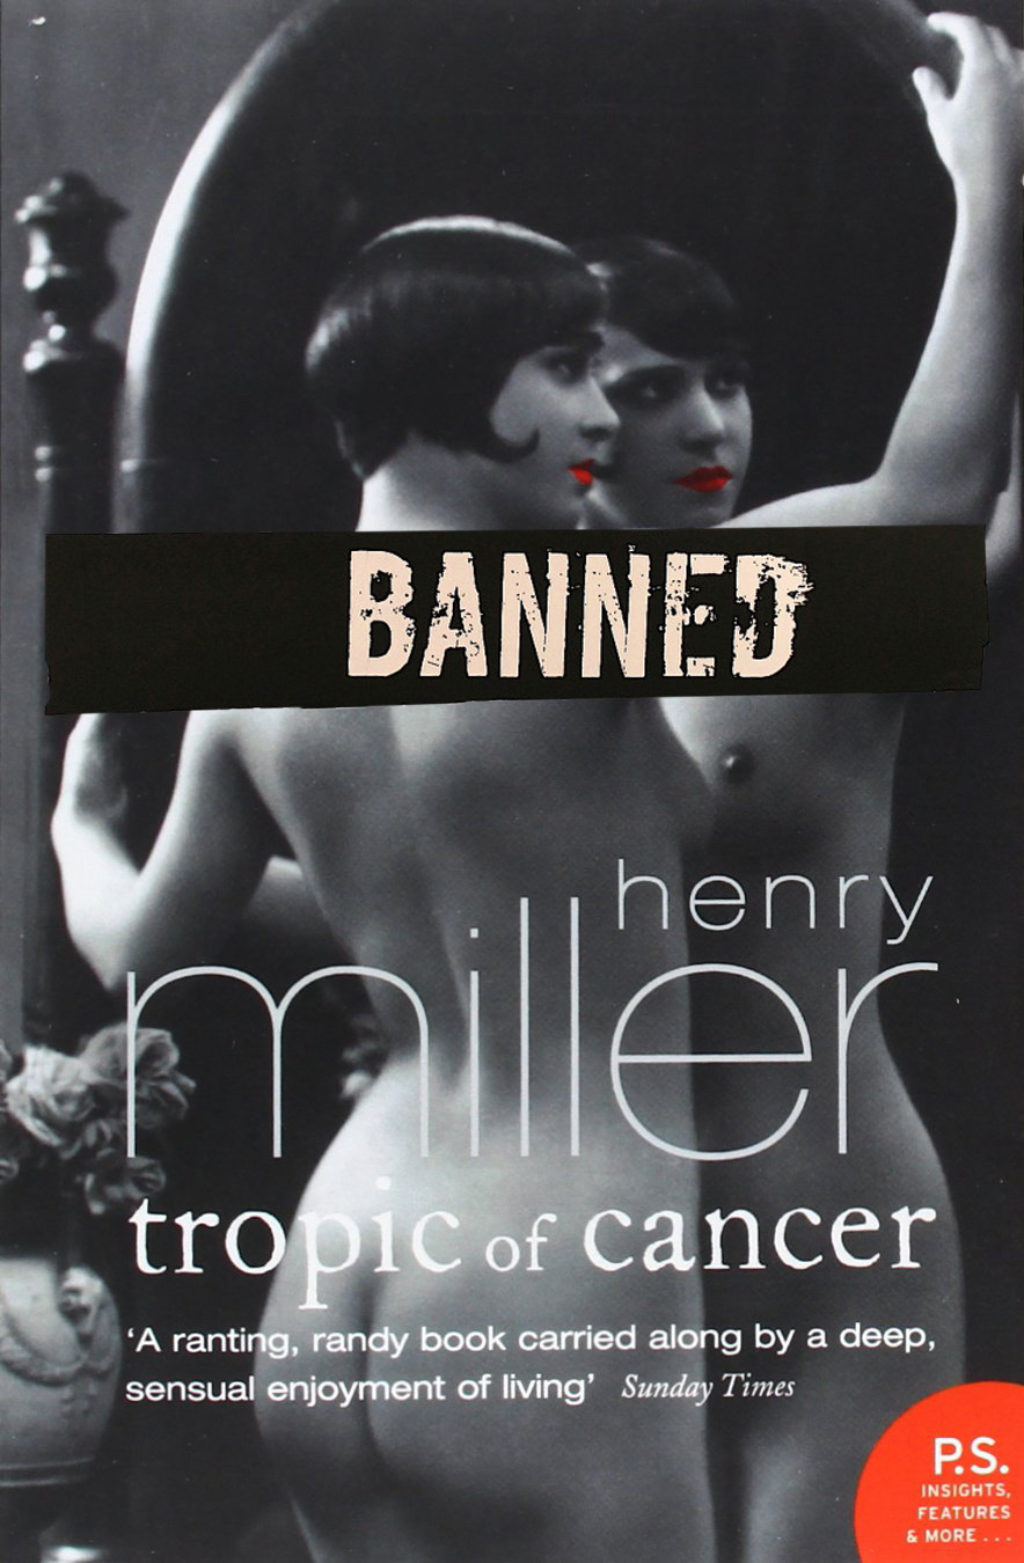 tropic-of-cancer-banned